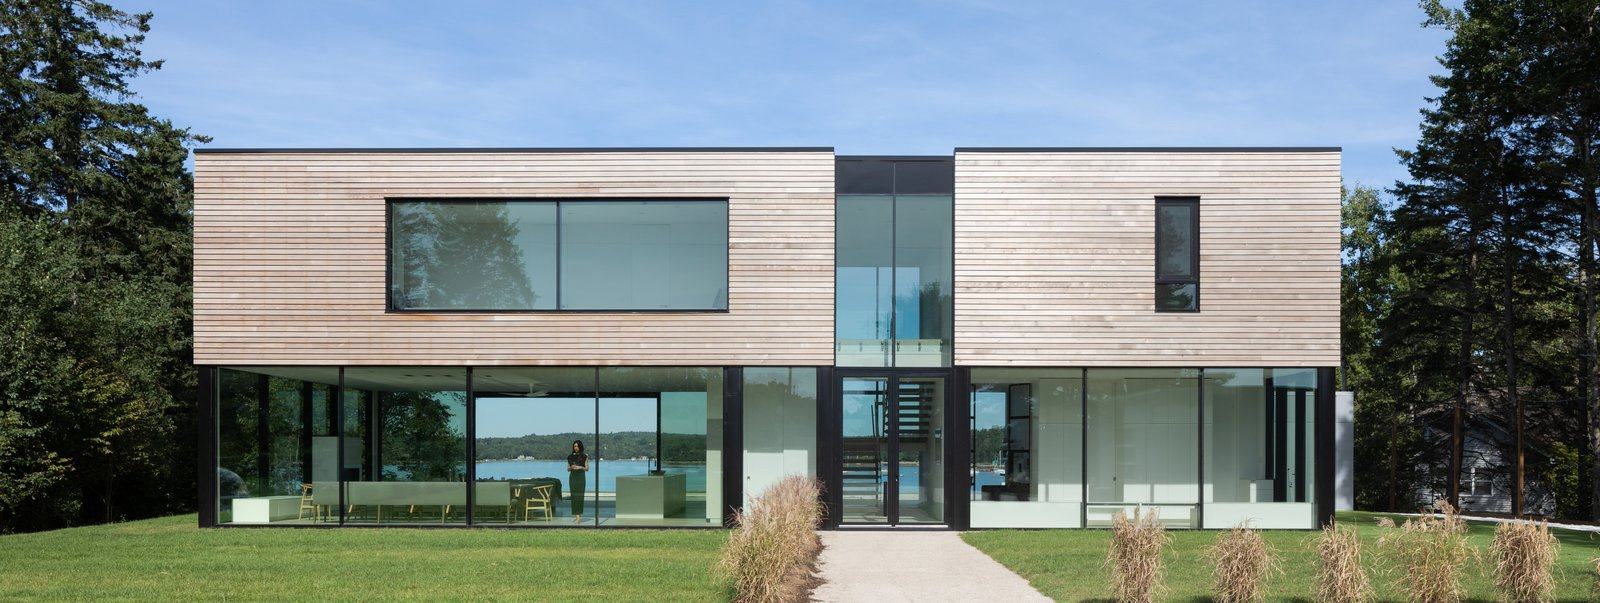 Teph Inlet by Omar Ghandi Architect